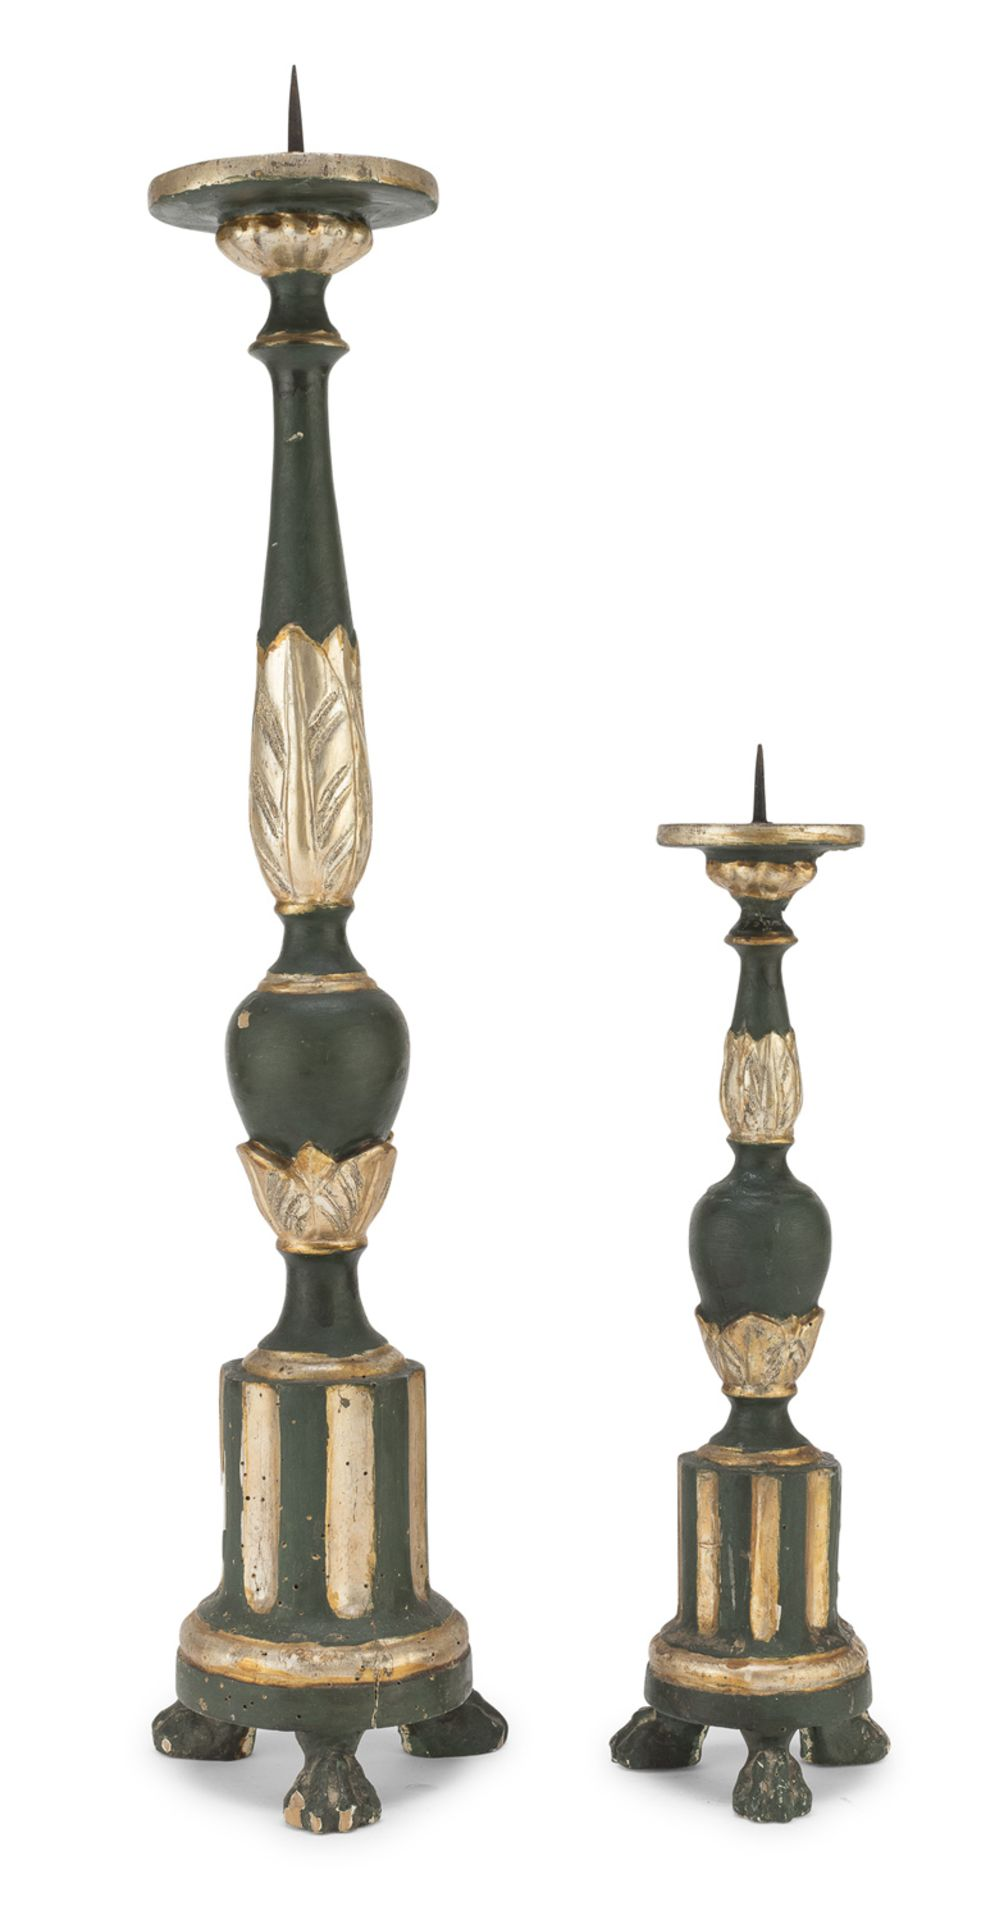 TWO CANDLESTICKS IN LACQUERED WOOD LATE 18th CENTURY